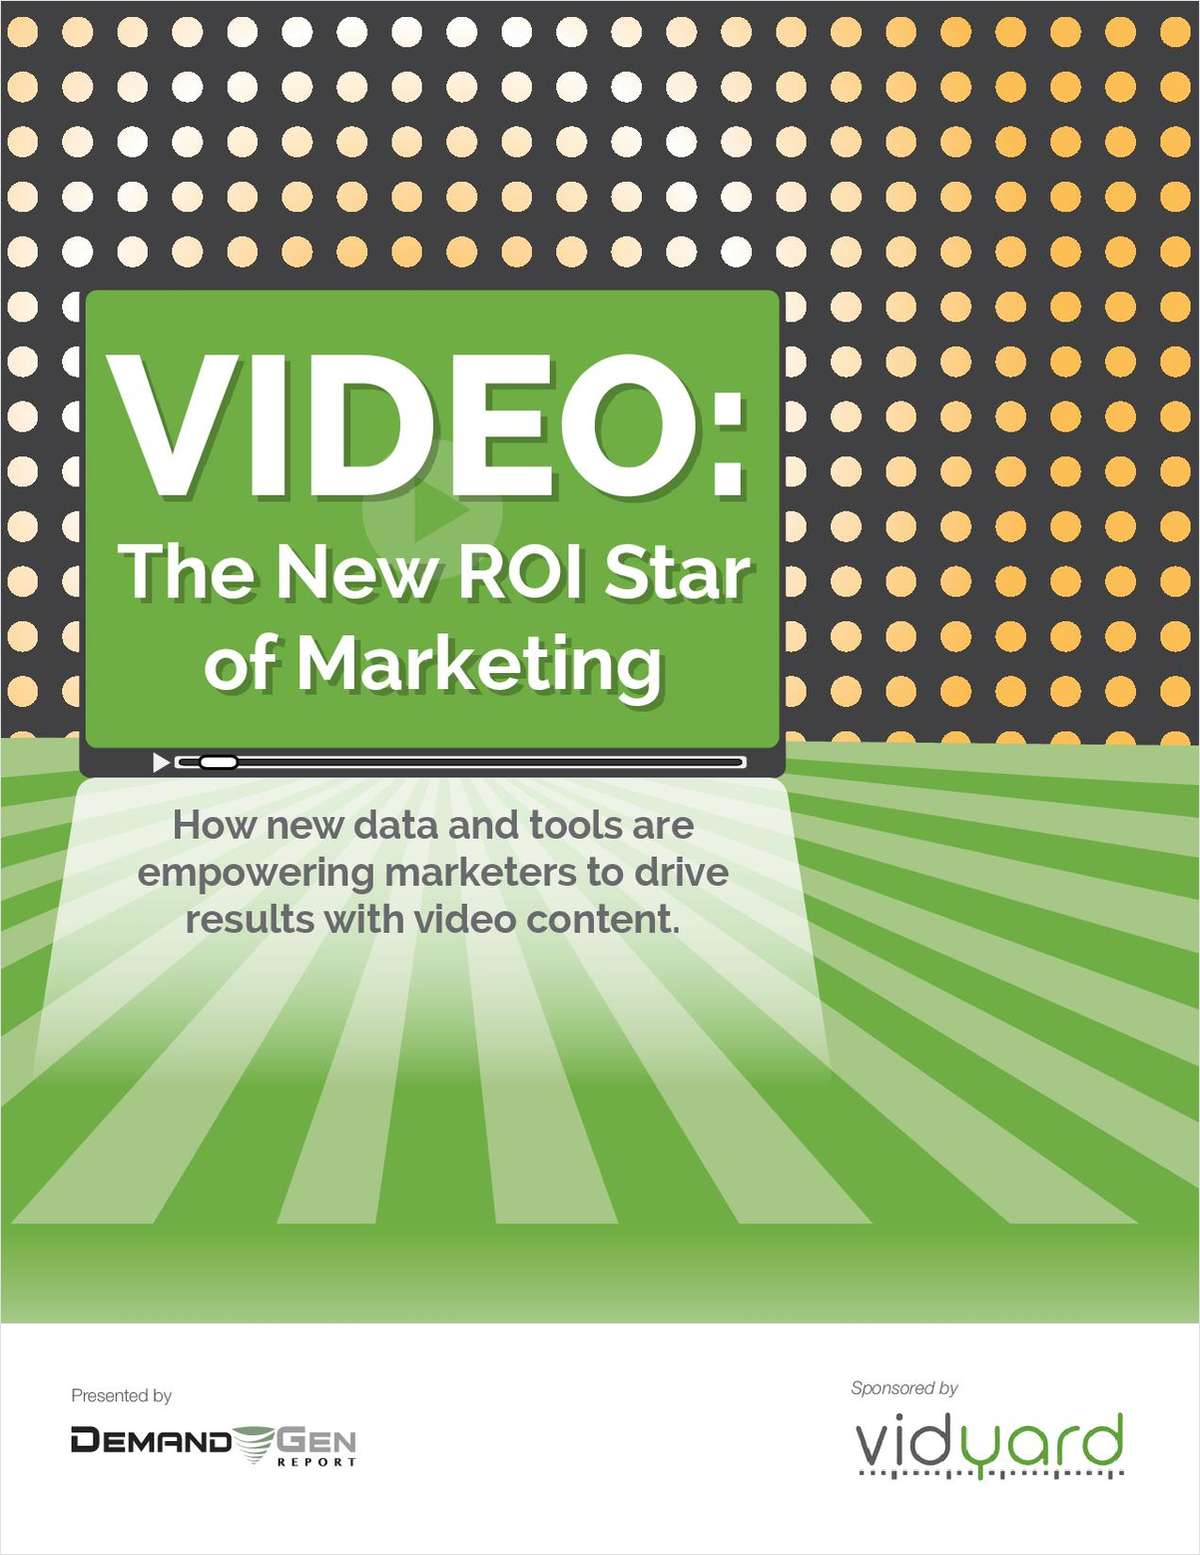 Video: The New ROI Star of Marketing